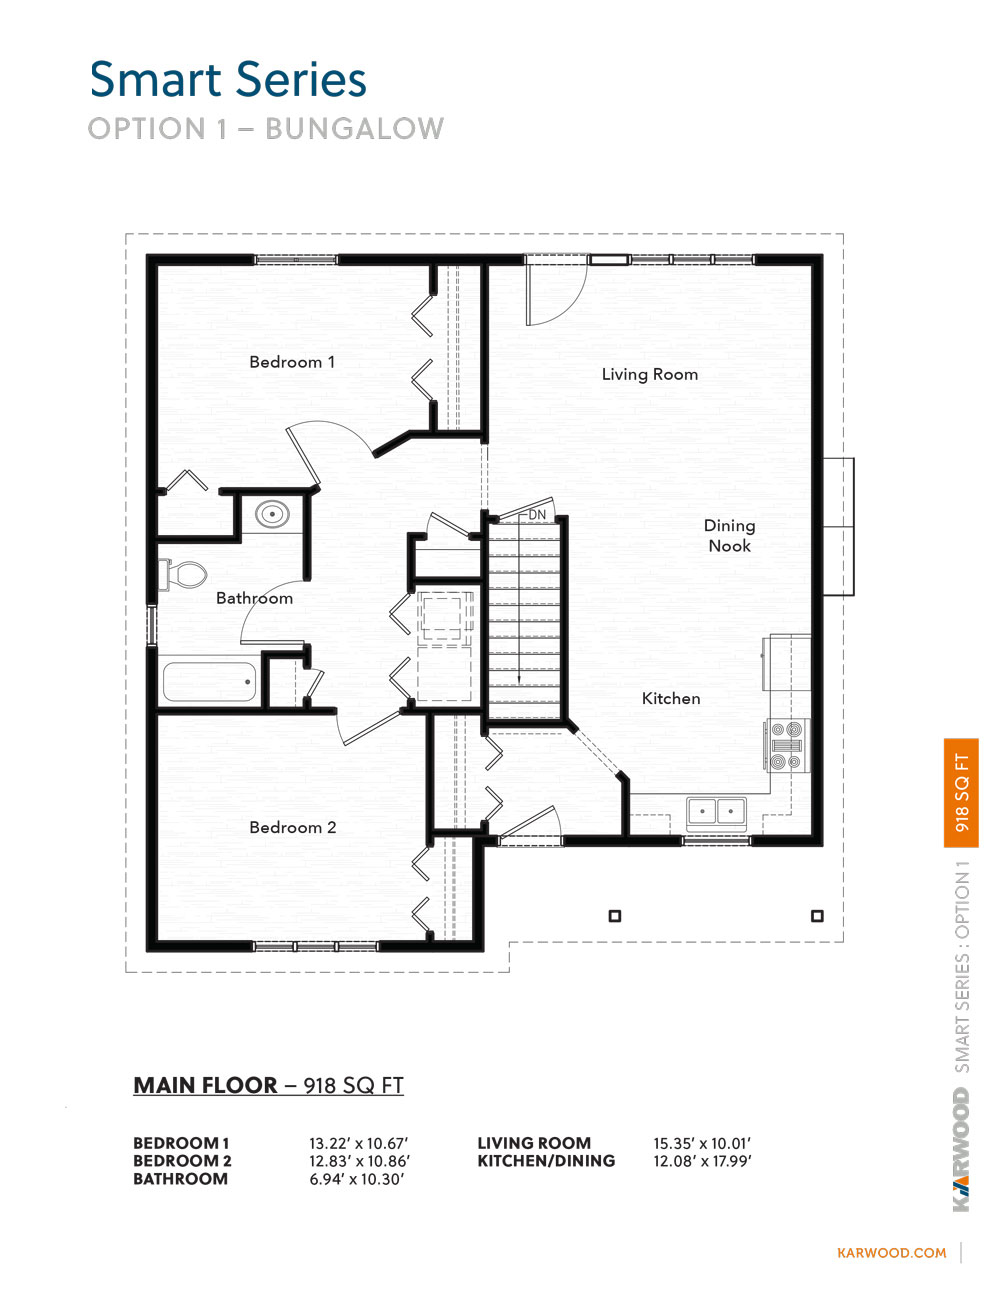 Option1-Bungalow–SmartSeries-2.jpg